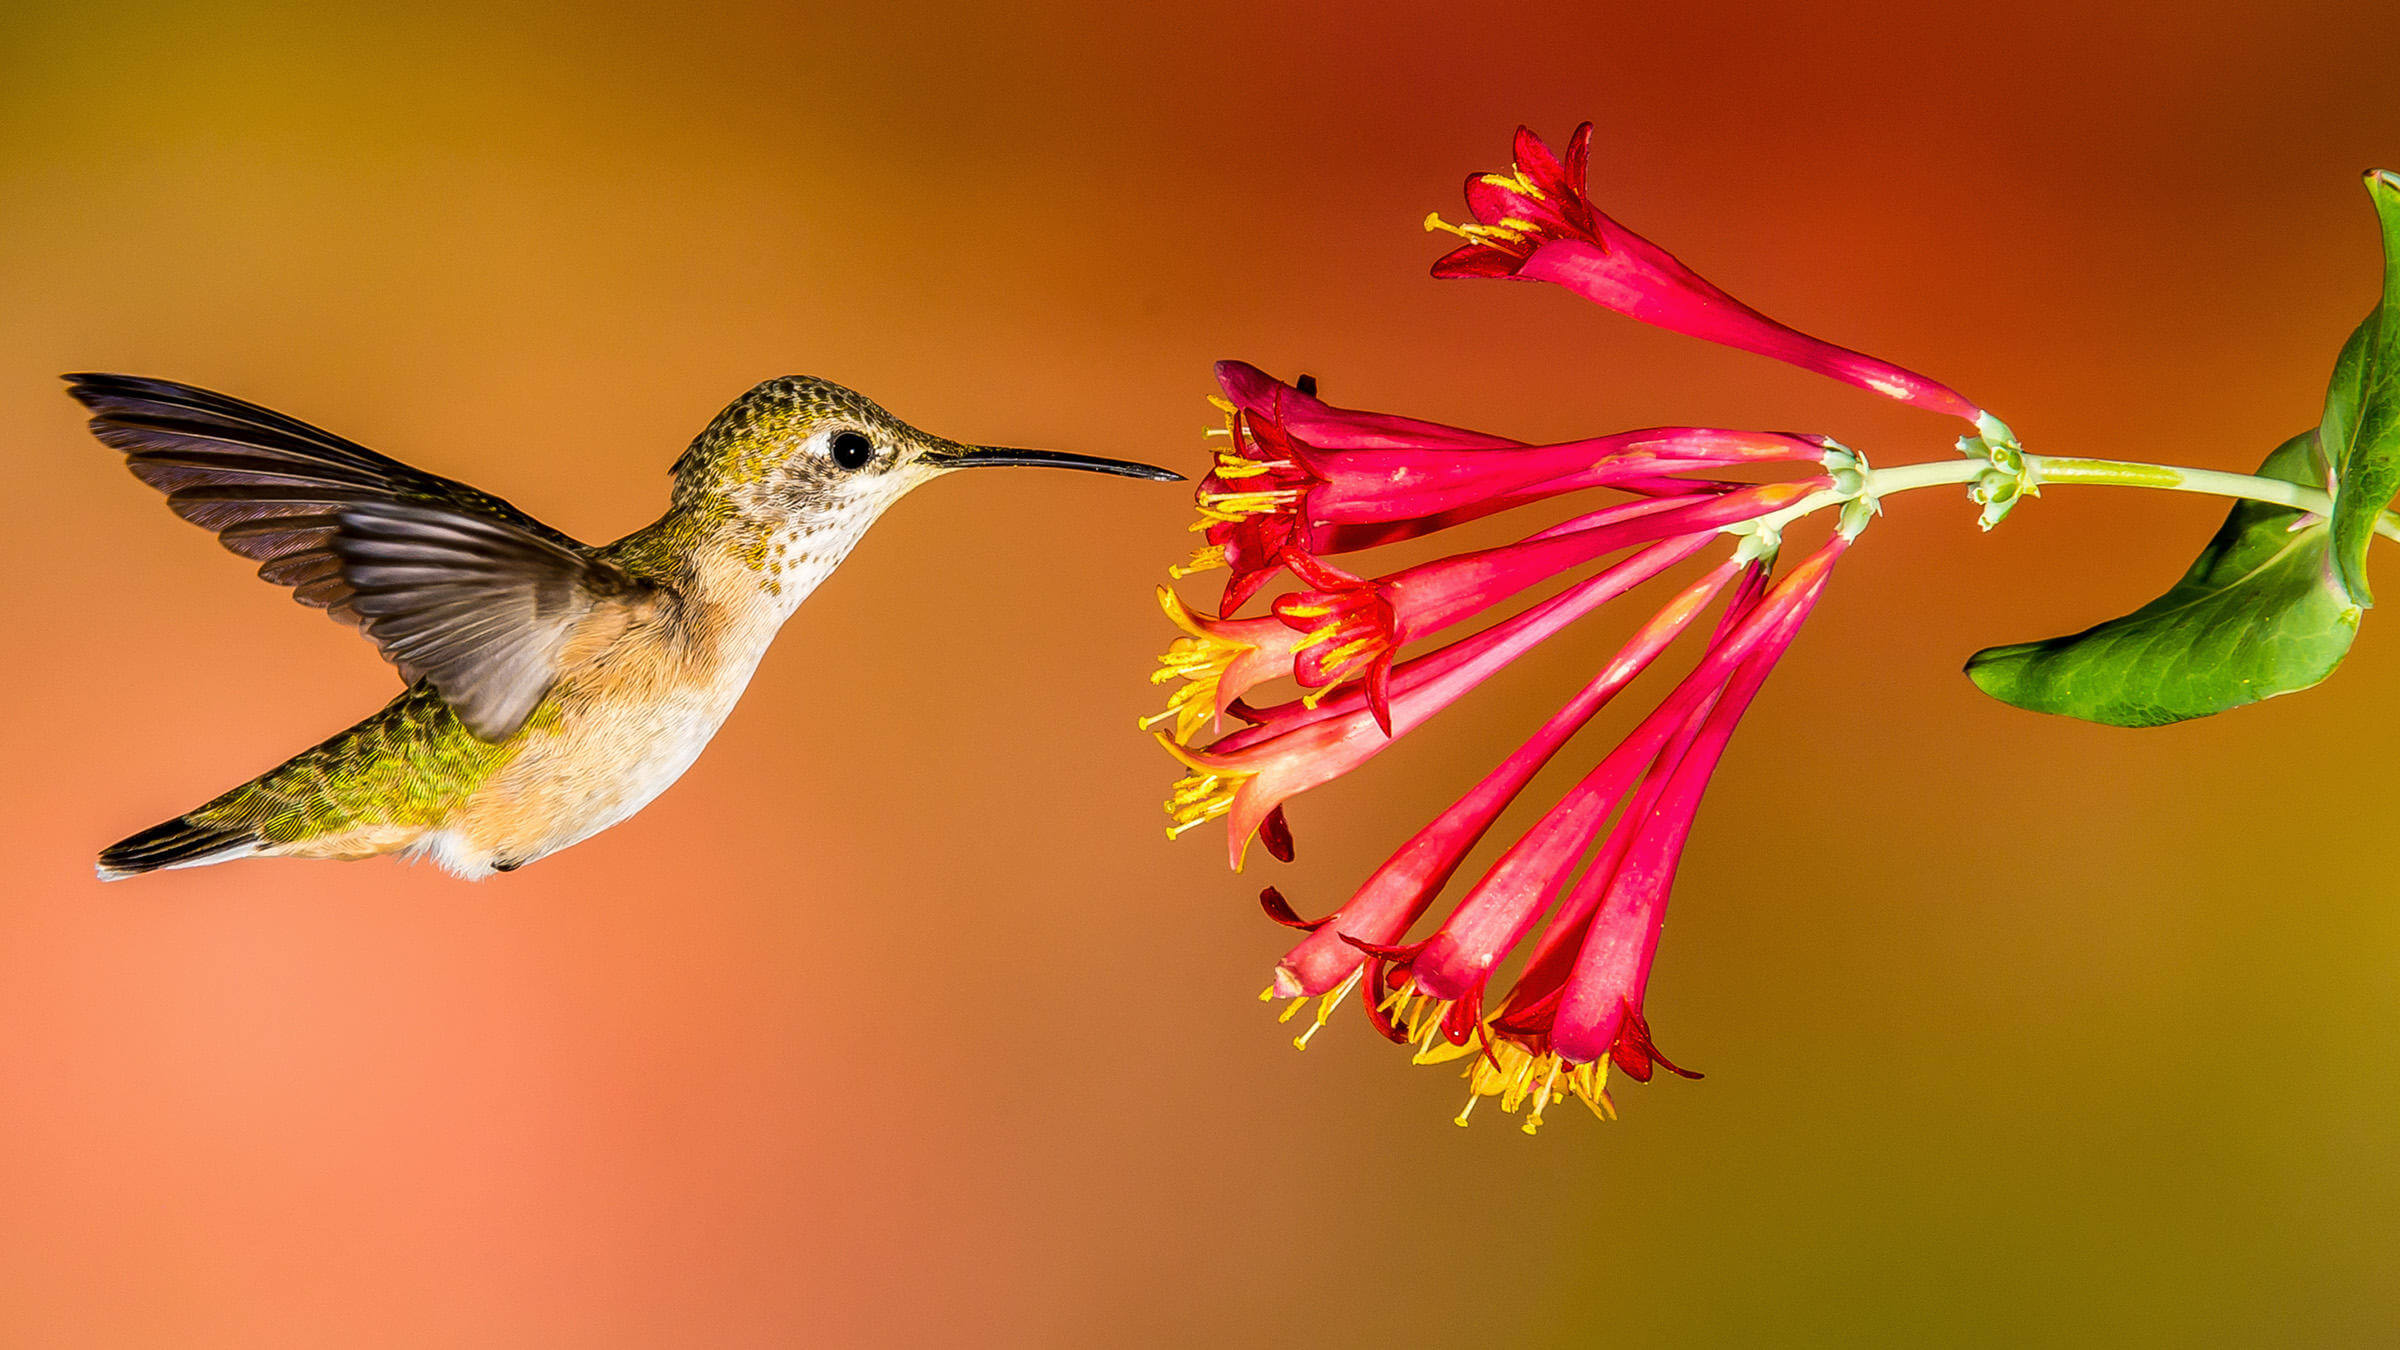 Enjoy the majesty that is hummingbirds